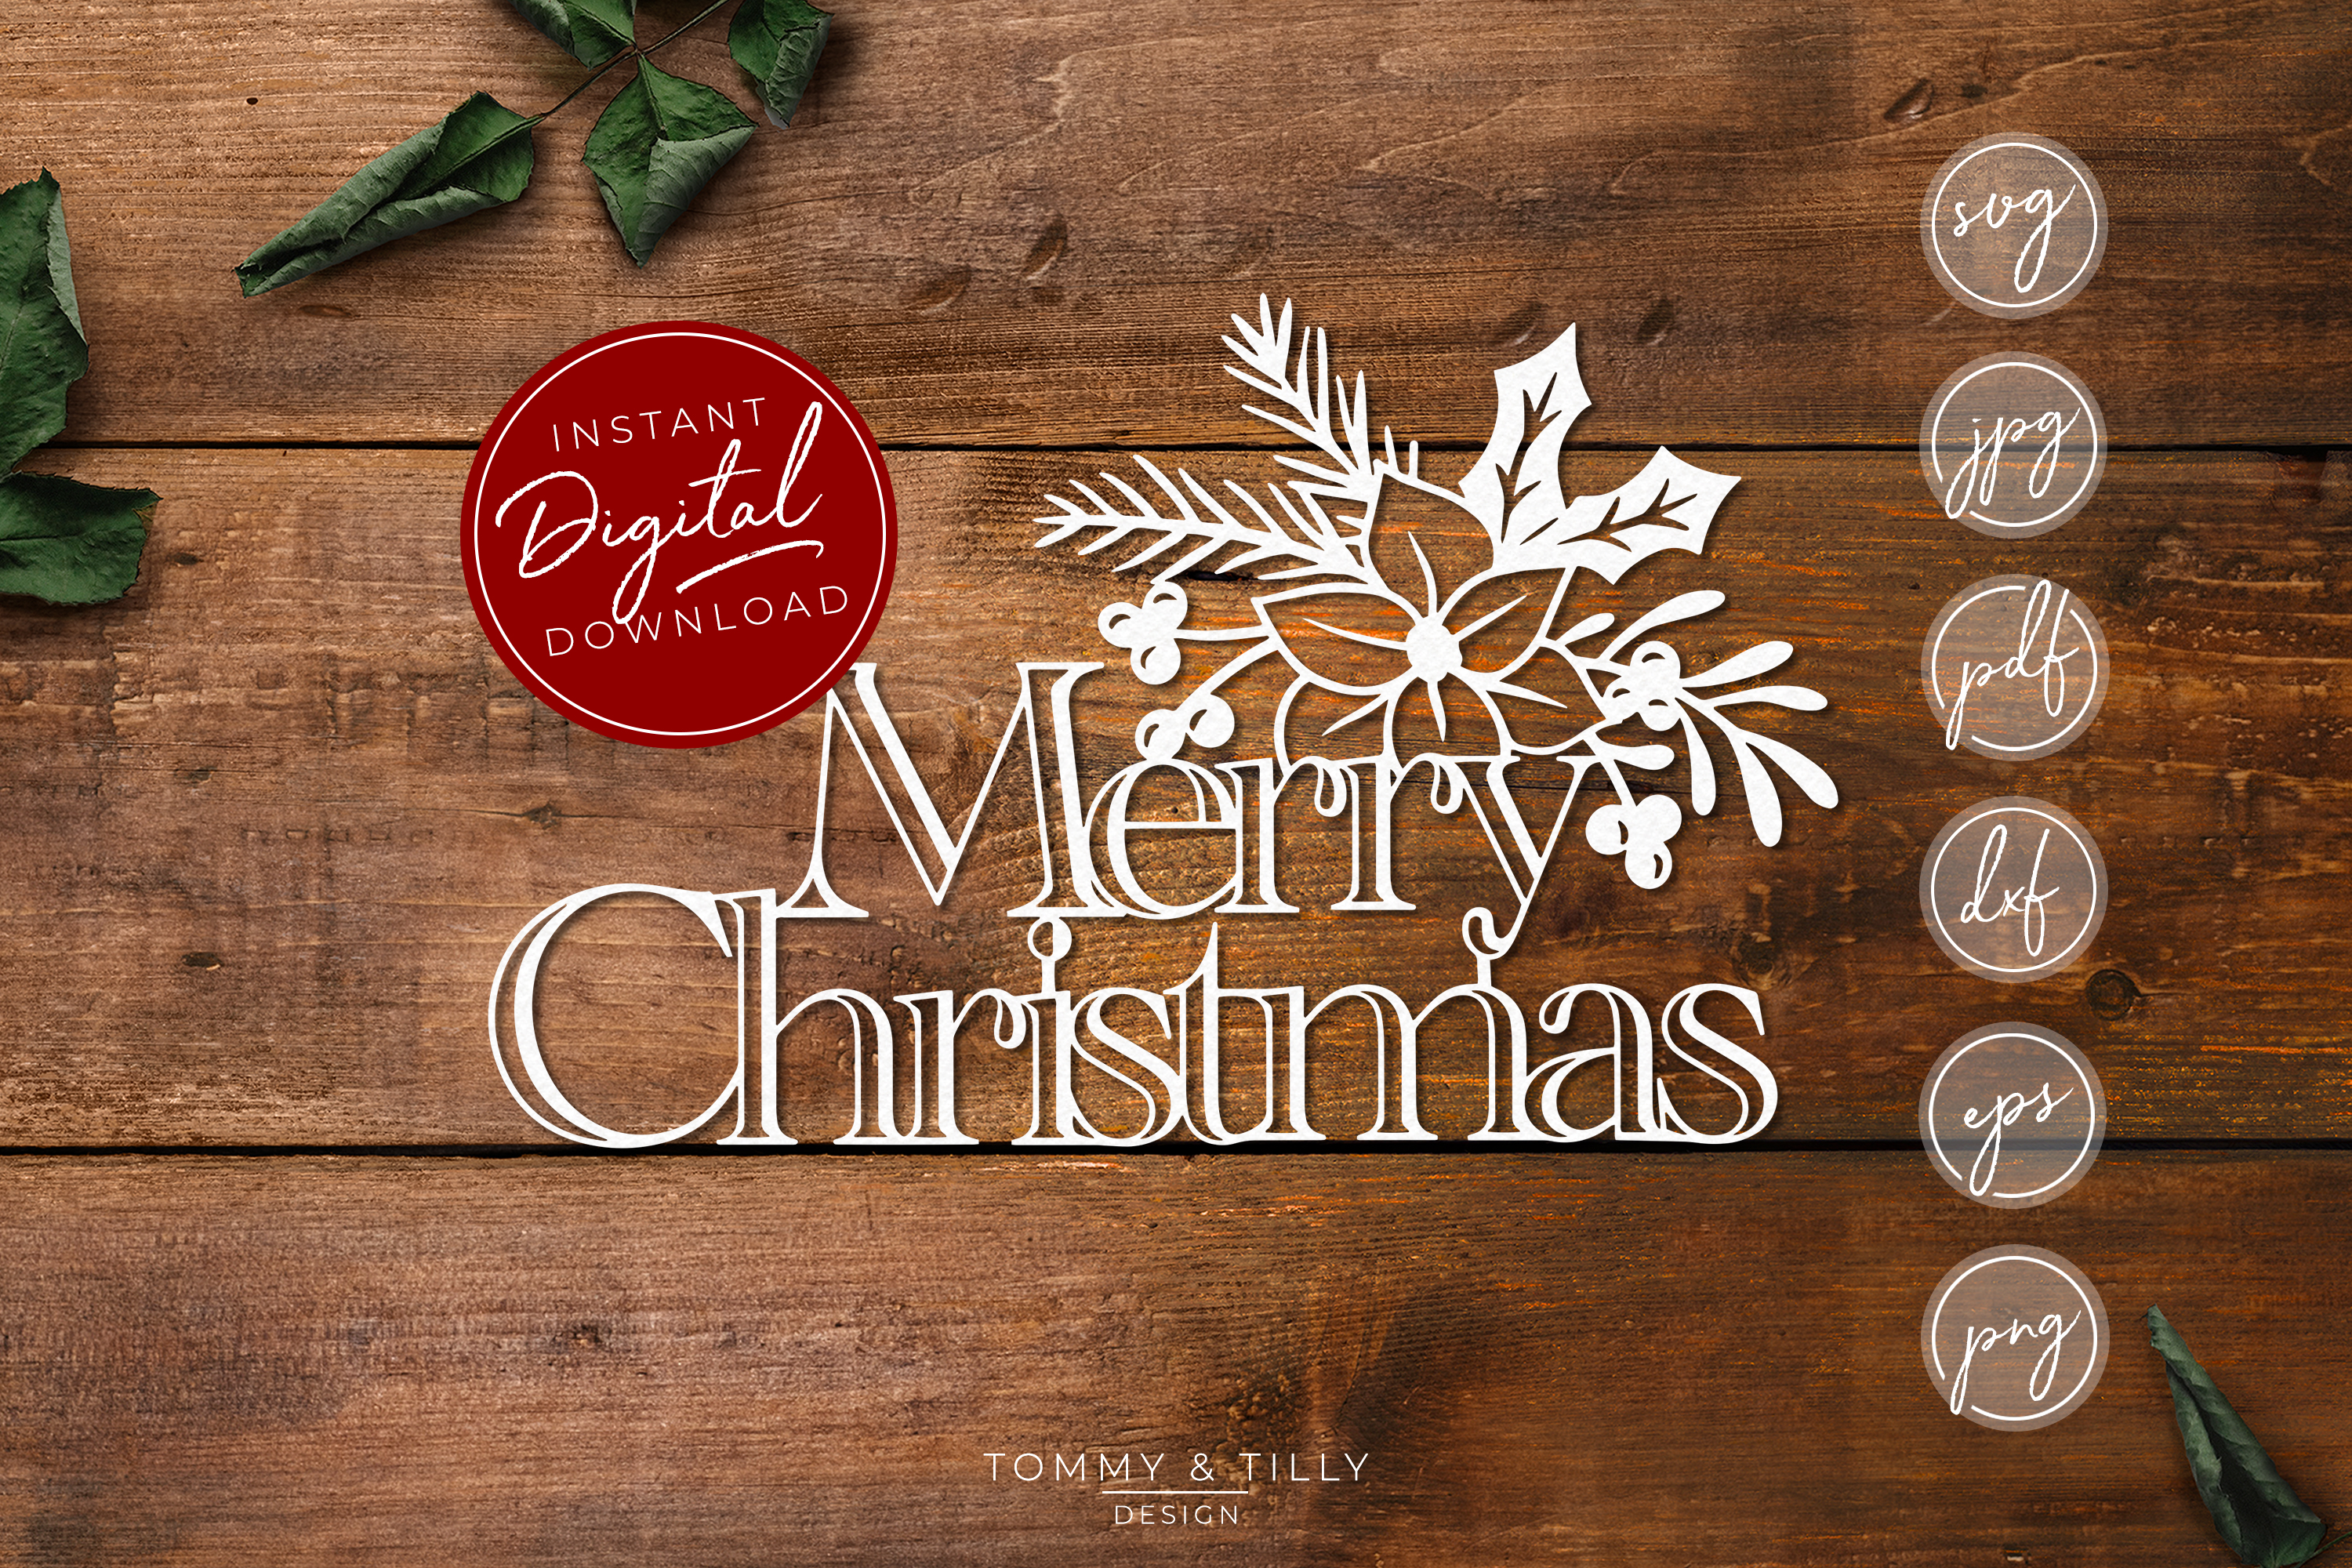 Merry Christmas - SVG EPS DXF PNG PDF JPG example image 1